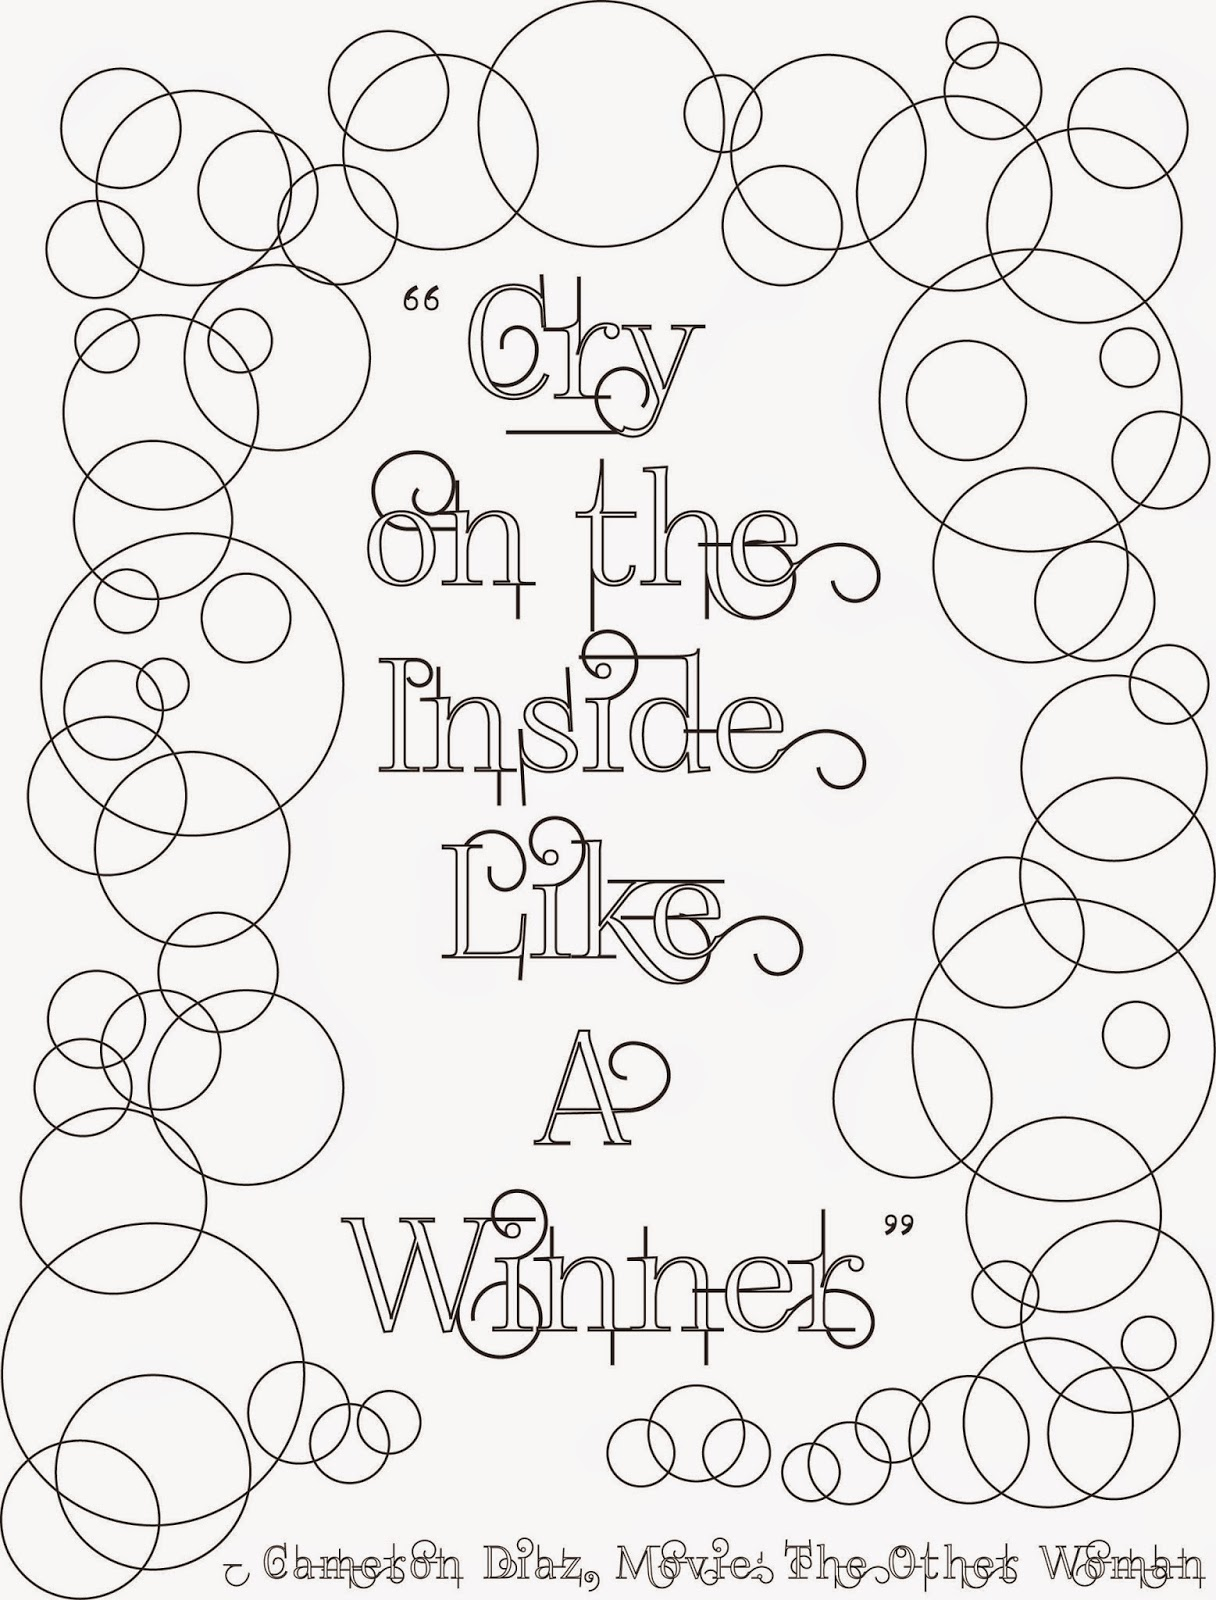 Free coloring pages with quotes for adults - Page Zen Quotes Adult Coloring Pages 618x800 Free